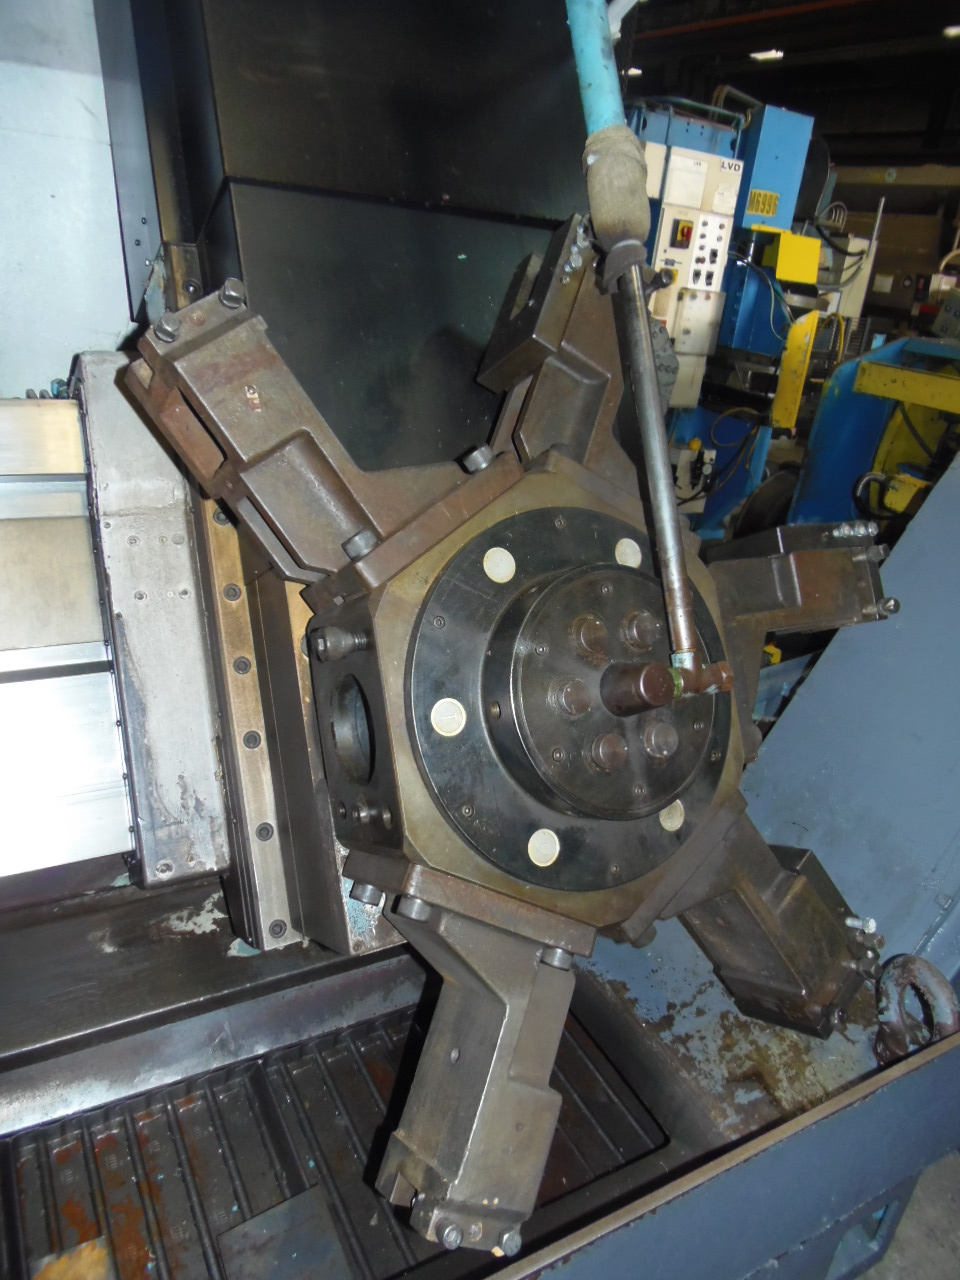 "MORI SEIKI SL-8, 80/98, FANUC 21iT CONTROL, 39.3"" SWING, 32"" 4 JAW CHUCK, 43"" Z, 10.25"" HOLE, 4 - 553 RPM"